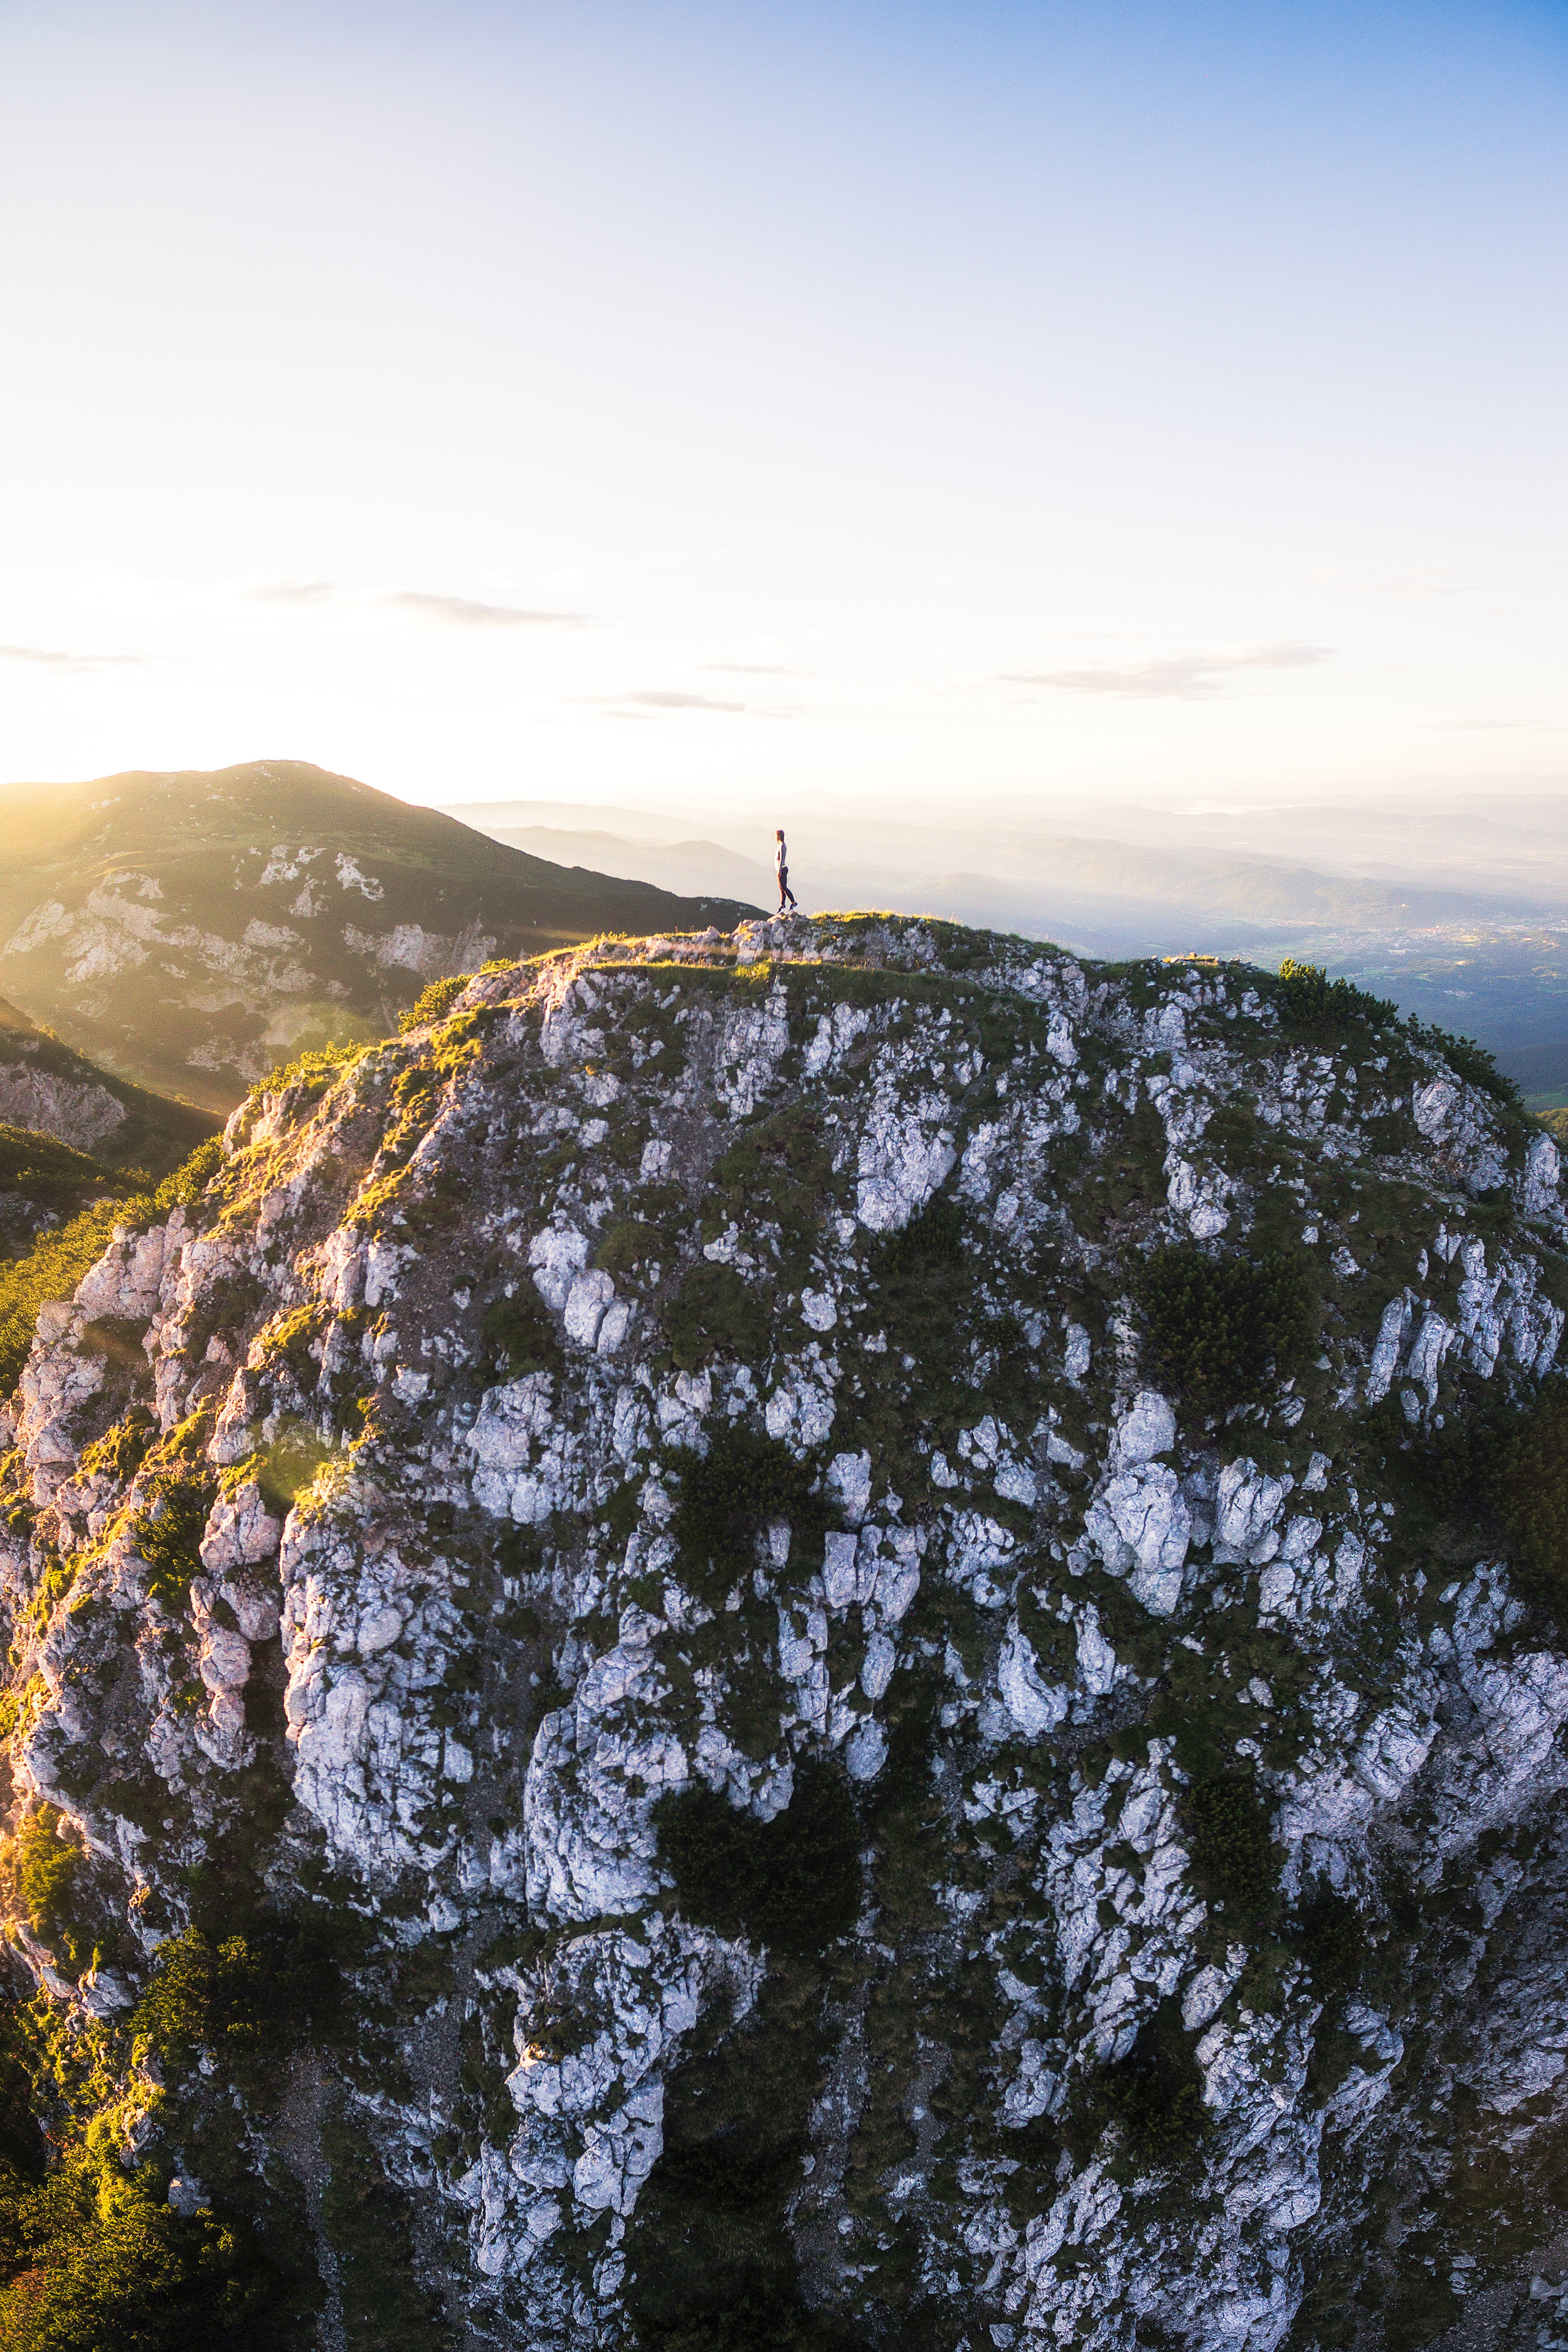 Krvavec Sunrise in Slovenia with Andrea by drone by Michael Matti.jpg